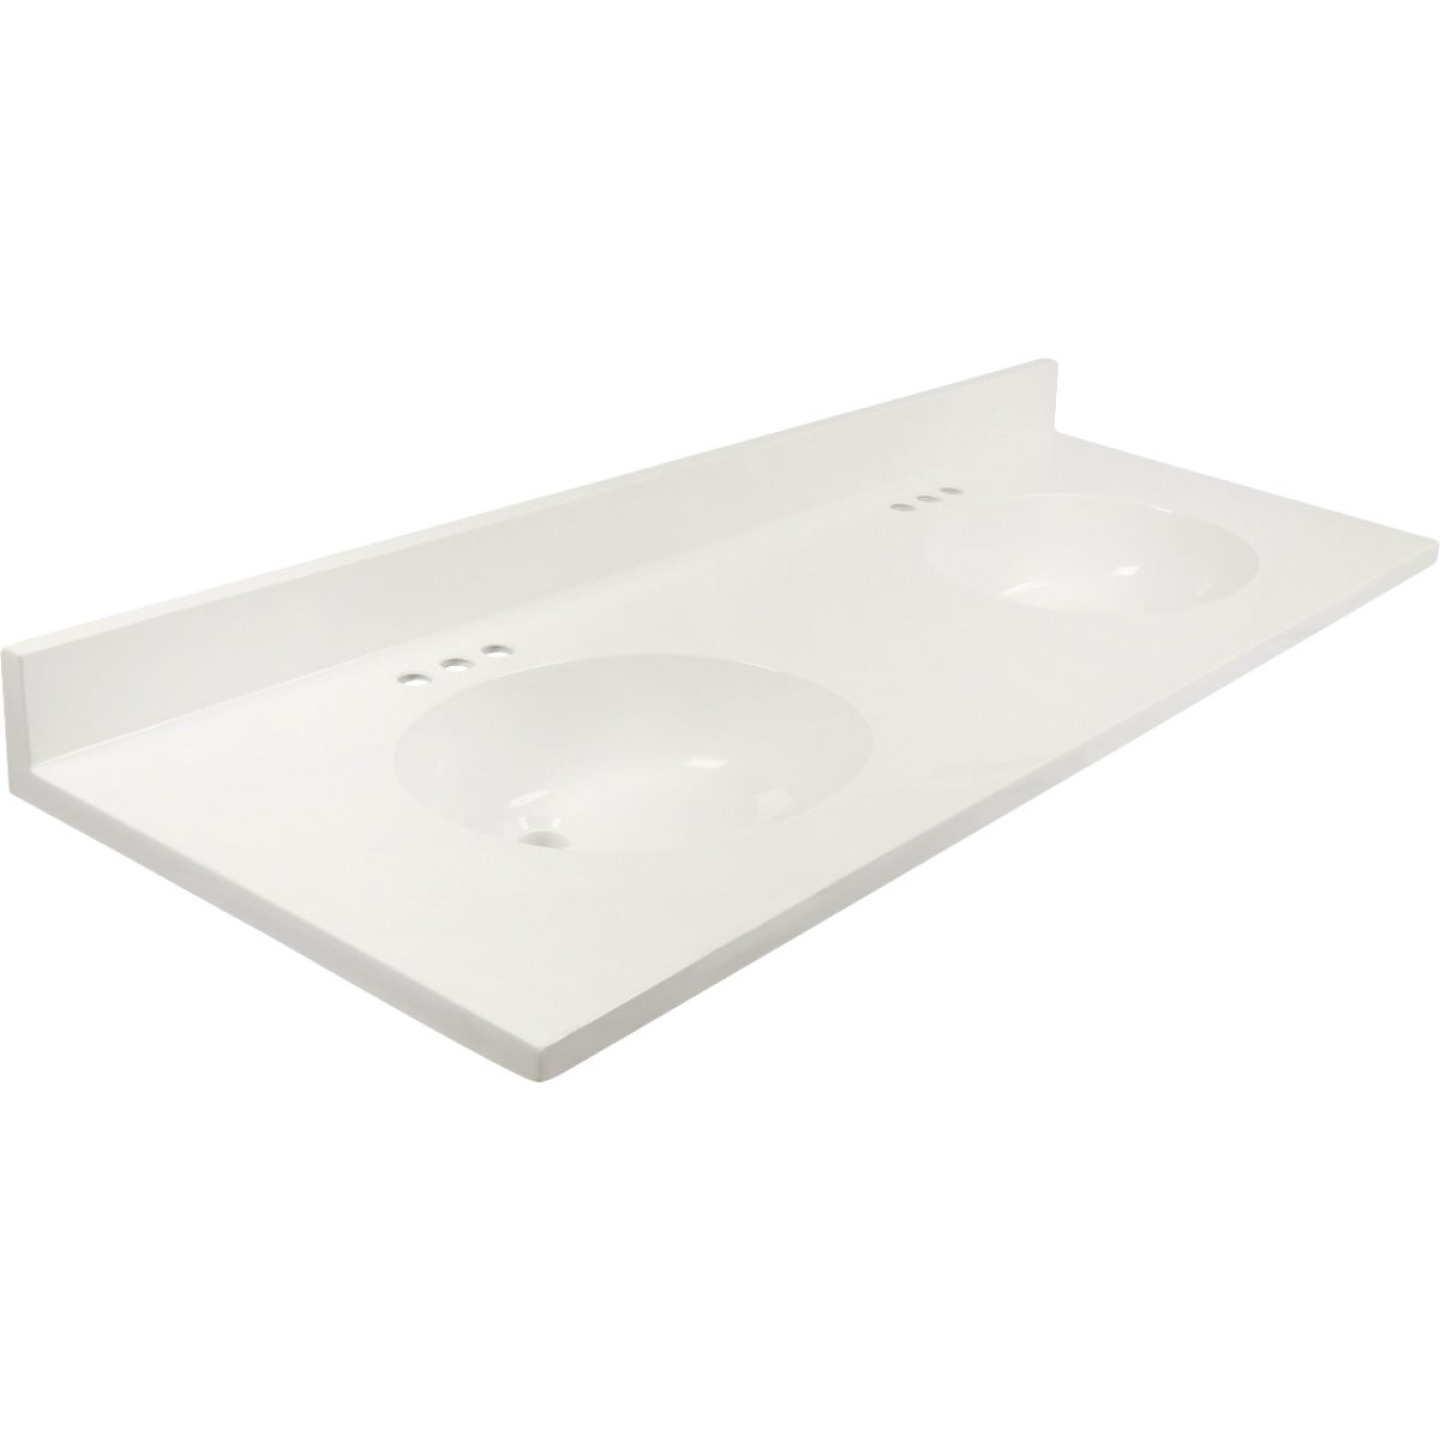 Modular Vanity Tops 61 In. W x 22 In. D Solid White Cultured Marble Flat Edge Vanity Top with Oval Bowl Image 1